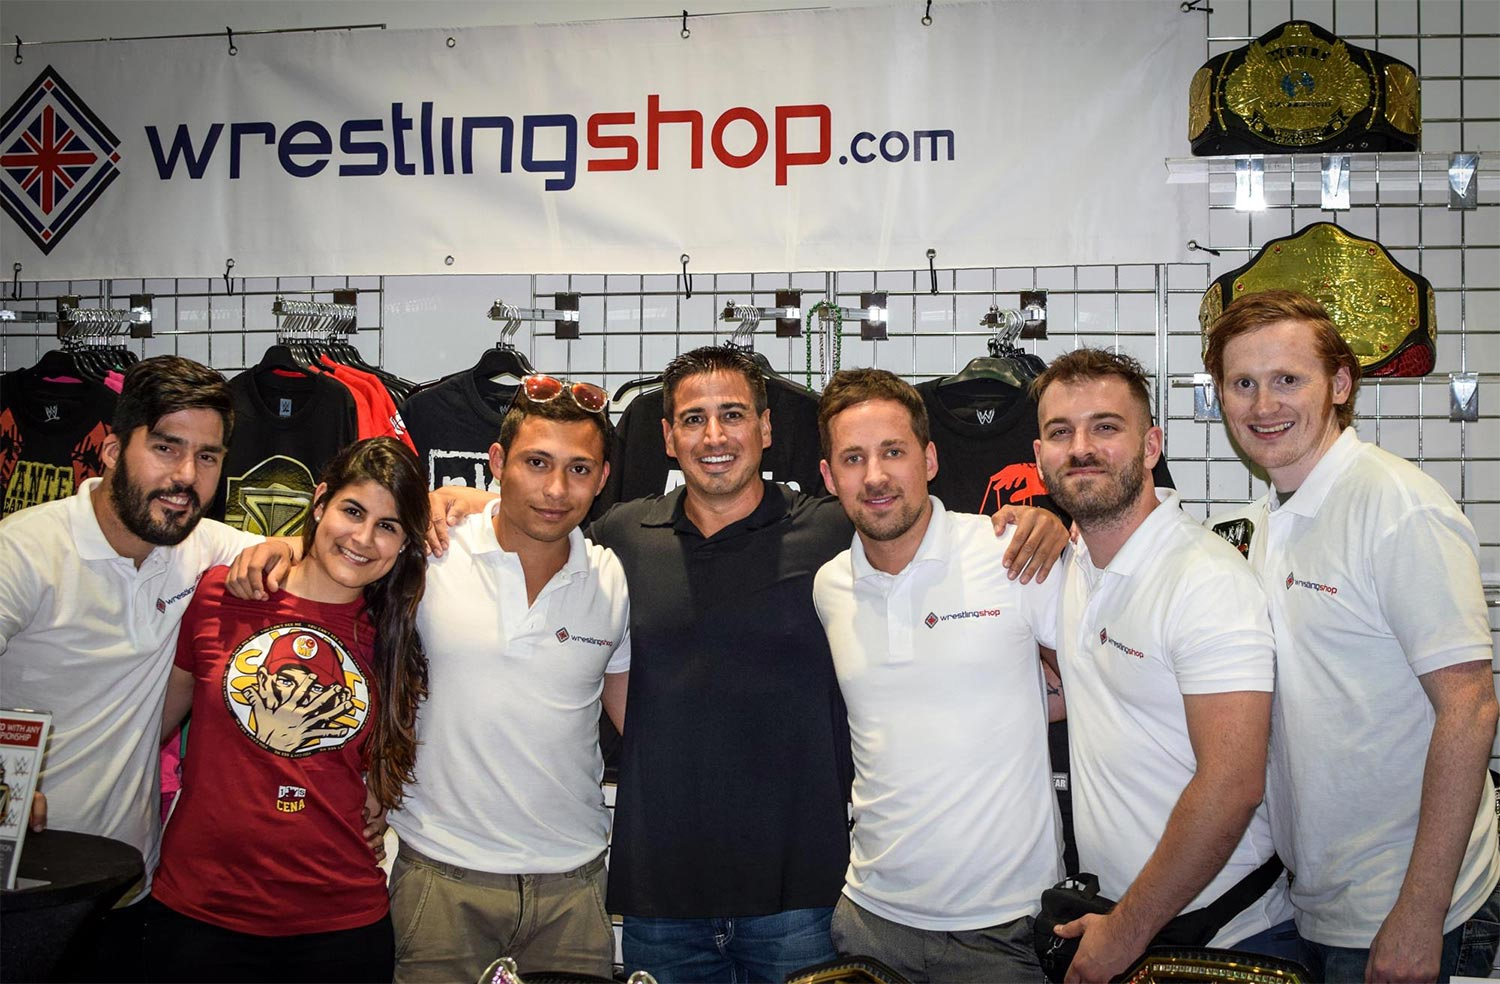 Wrestlingshop.com staff